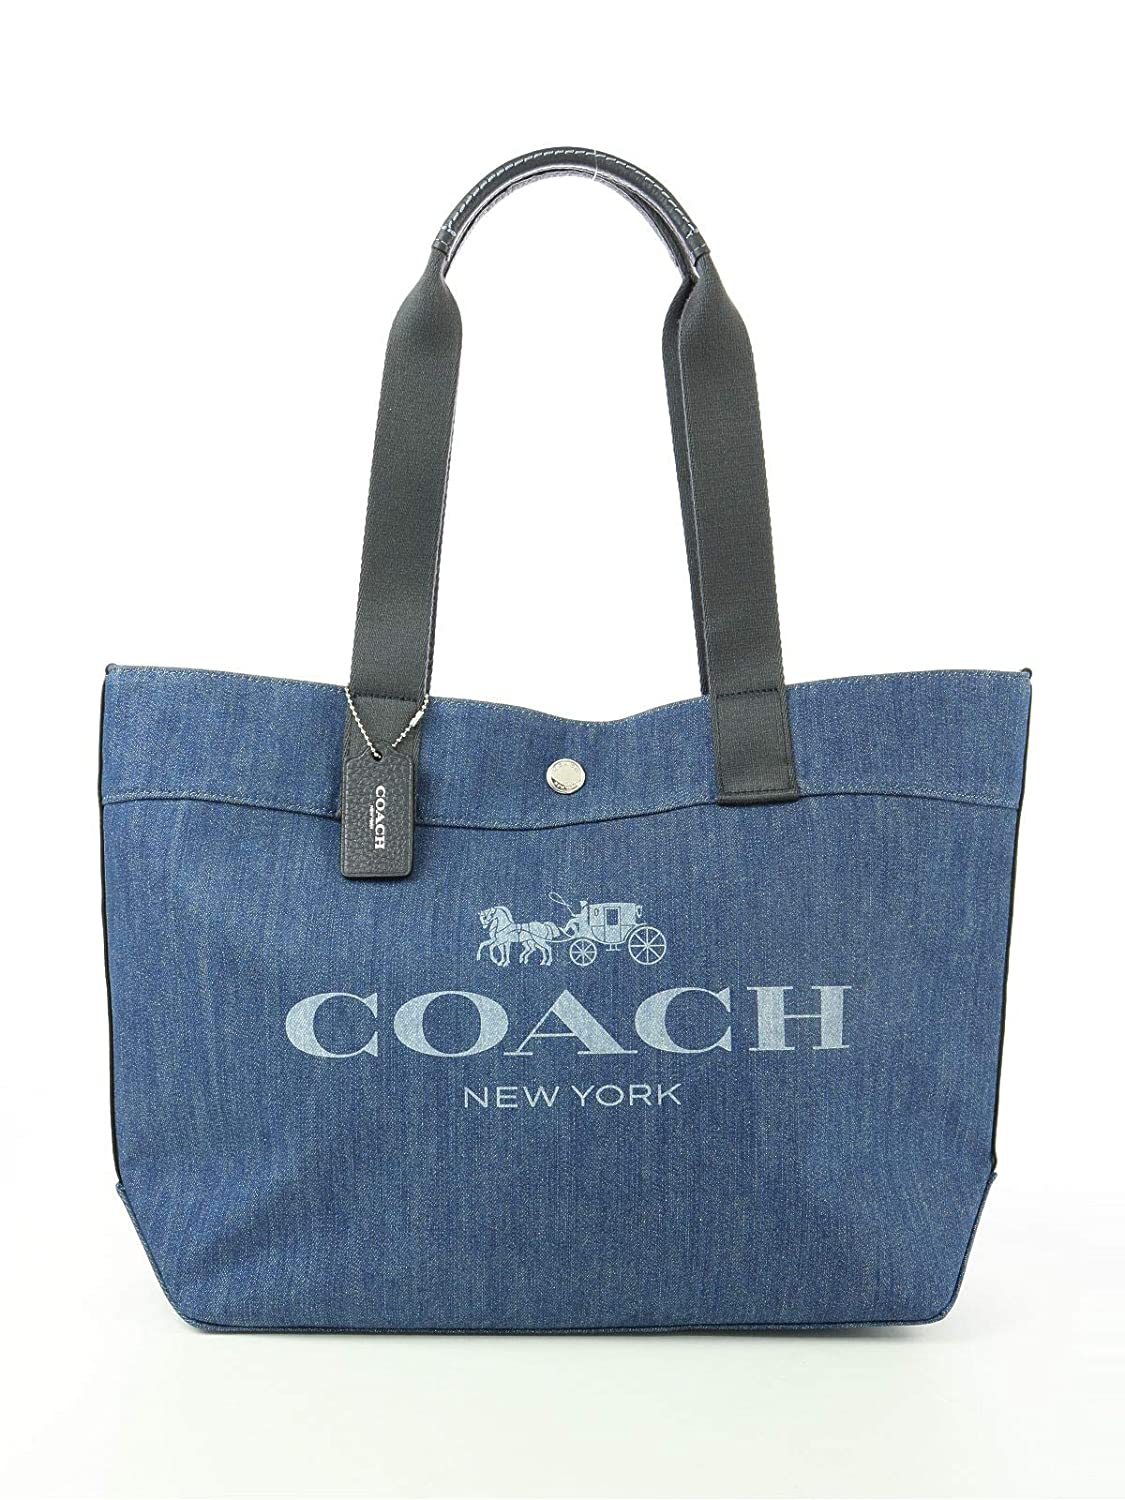 Image result for coach denim tote